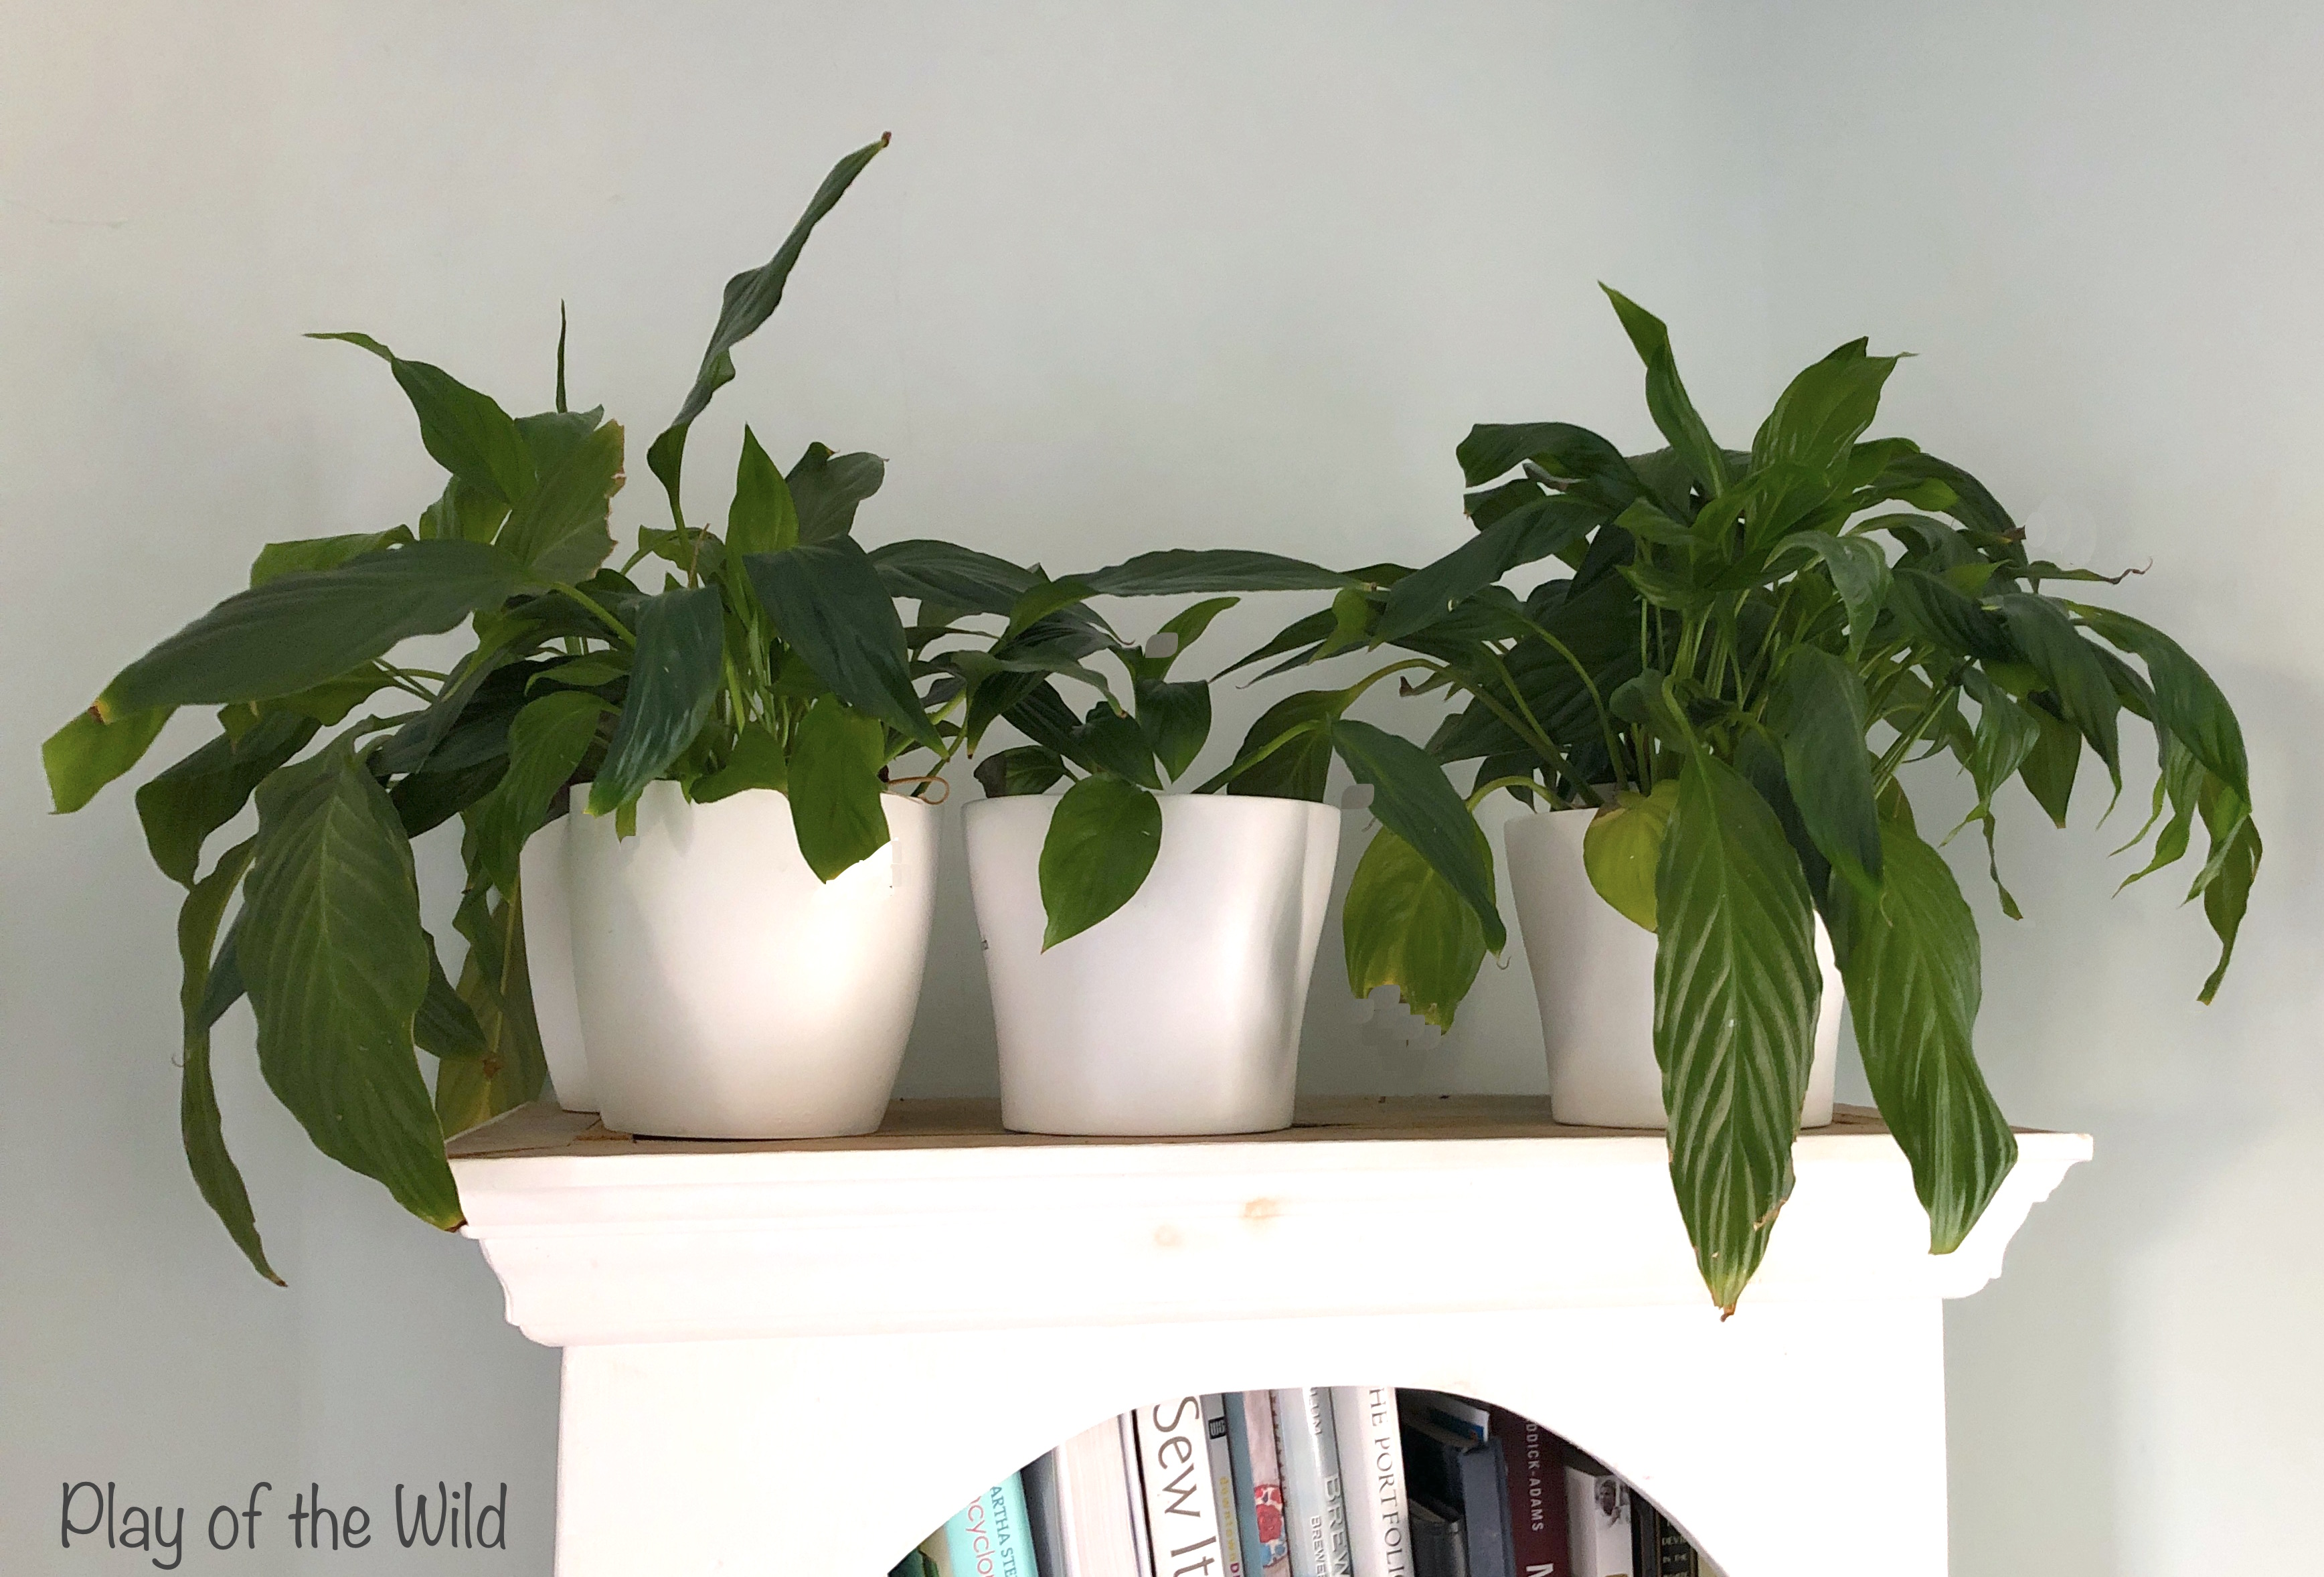 Best Plants for Classroom. Peace Lily to purify air.